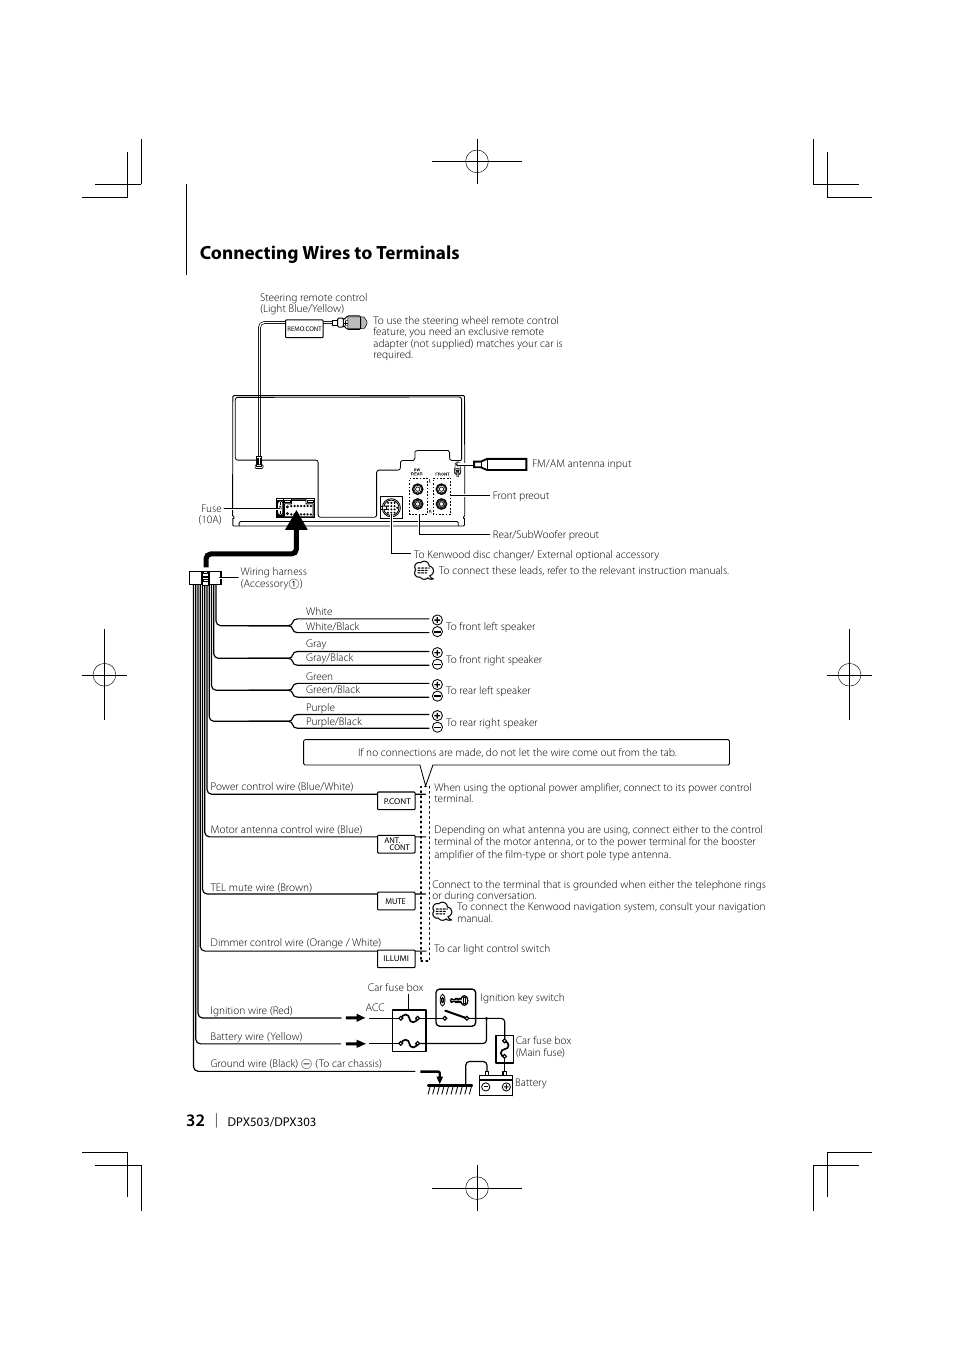 medium resolution of wiring diagram on connecting wires to terminals kenwood dpx503 user manual page 32 on